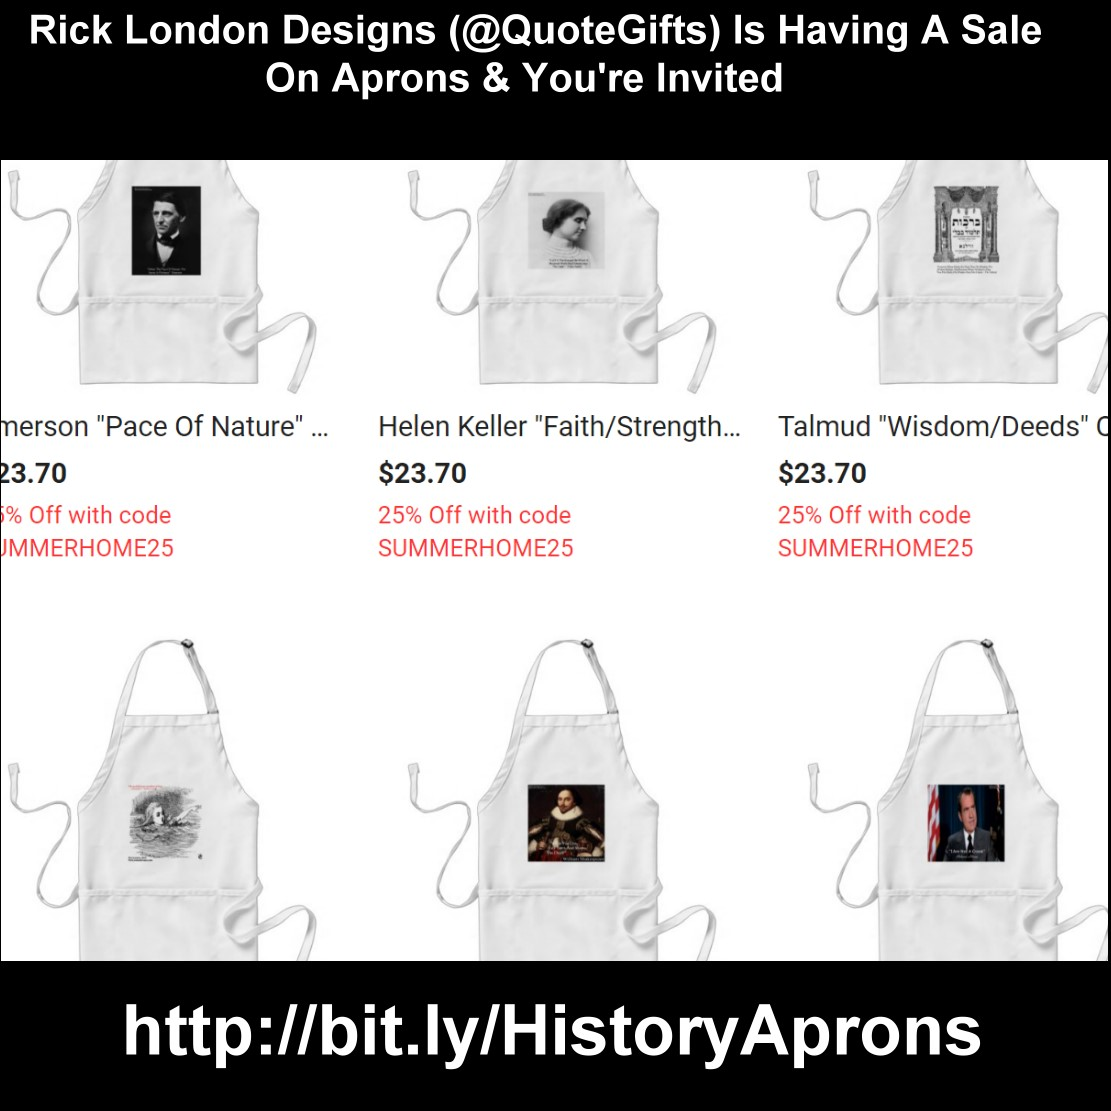 Featured in #USAToday #Famous #History #Quote #Giftshop by @QuoteGifts (Est 1997) #savemoney & order all your #giftgiving needs from the #convenience & #security of your own home #freepersonalization #gift #gifts @zazzle 🌏#WorldwideShipping 100% guarantee https://t.co/oKjiydLa2b https://t.co/8gSWEGUNrC